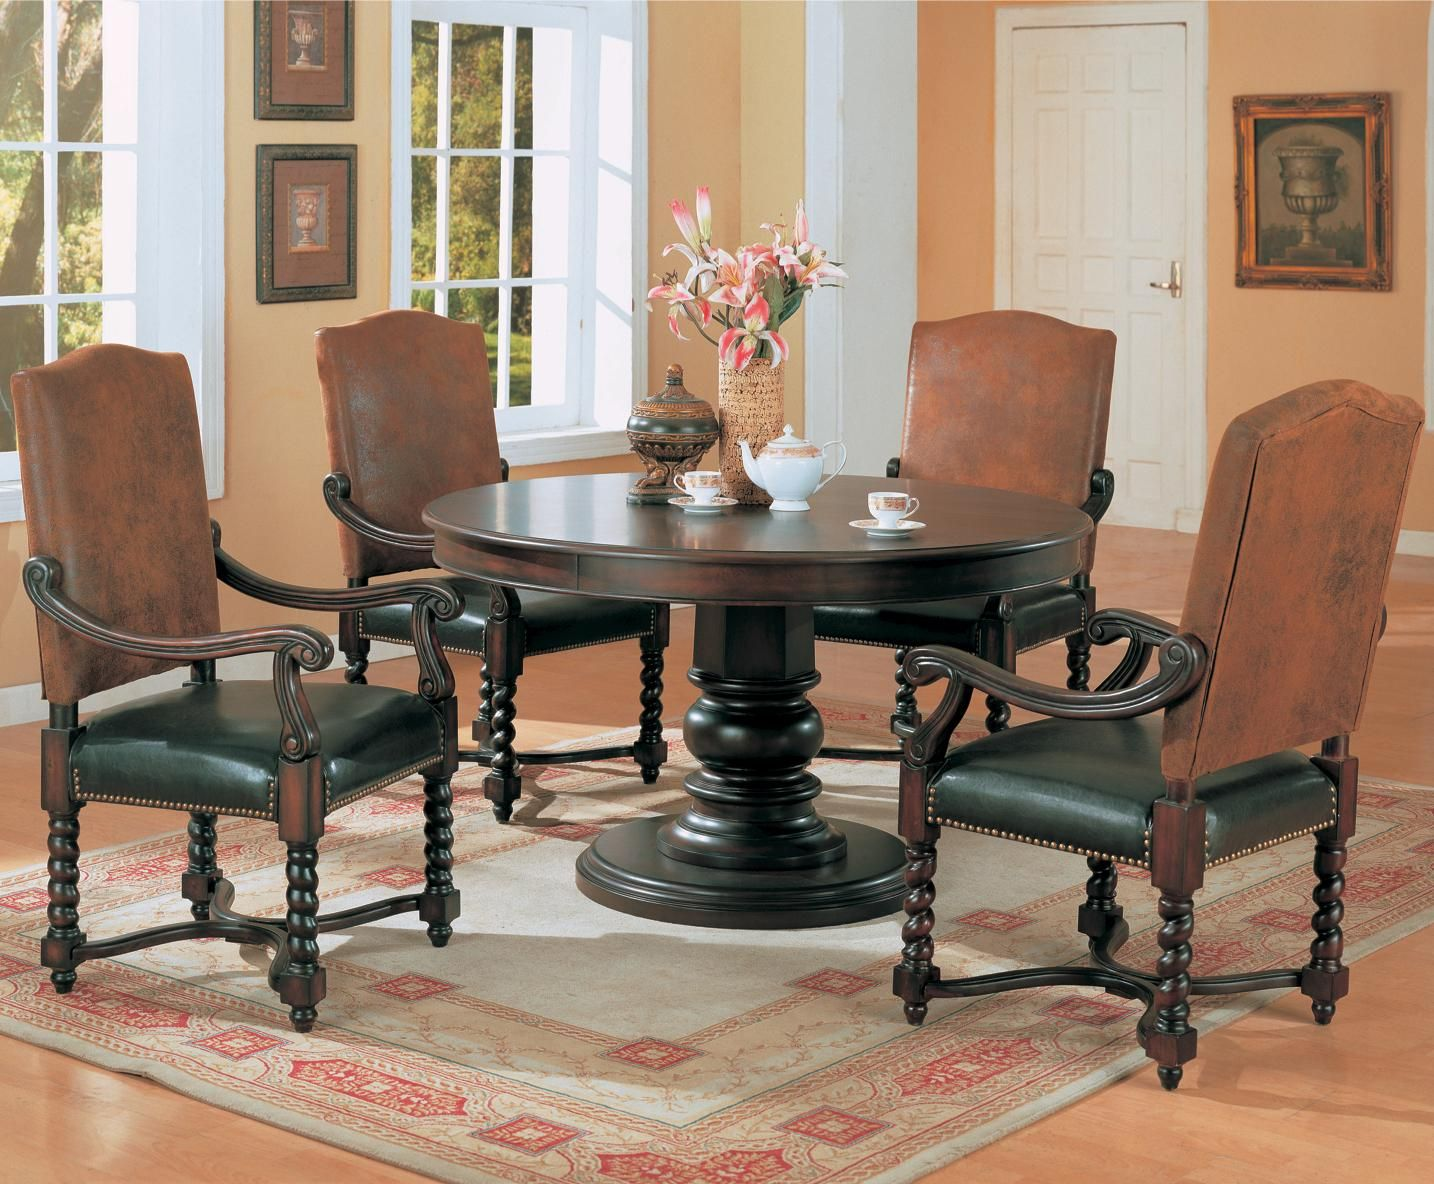 Dining Room Delightful Set Furniture For Decoration Using Black Wood Round Pedestal Tables Along With Leather Chair Pads